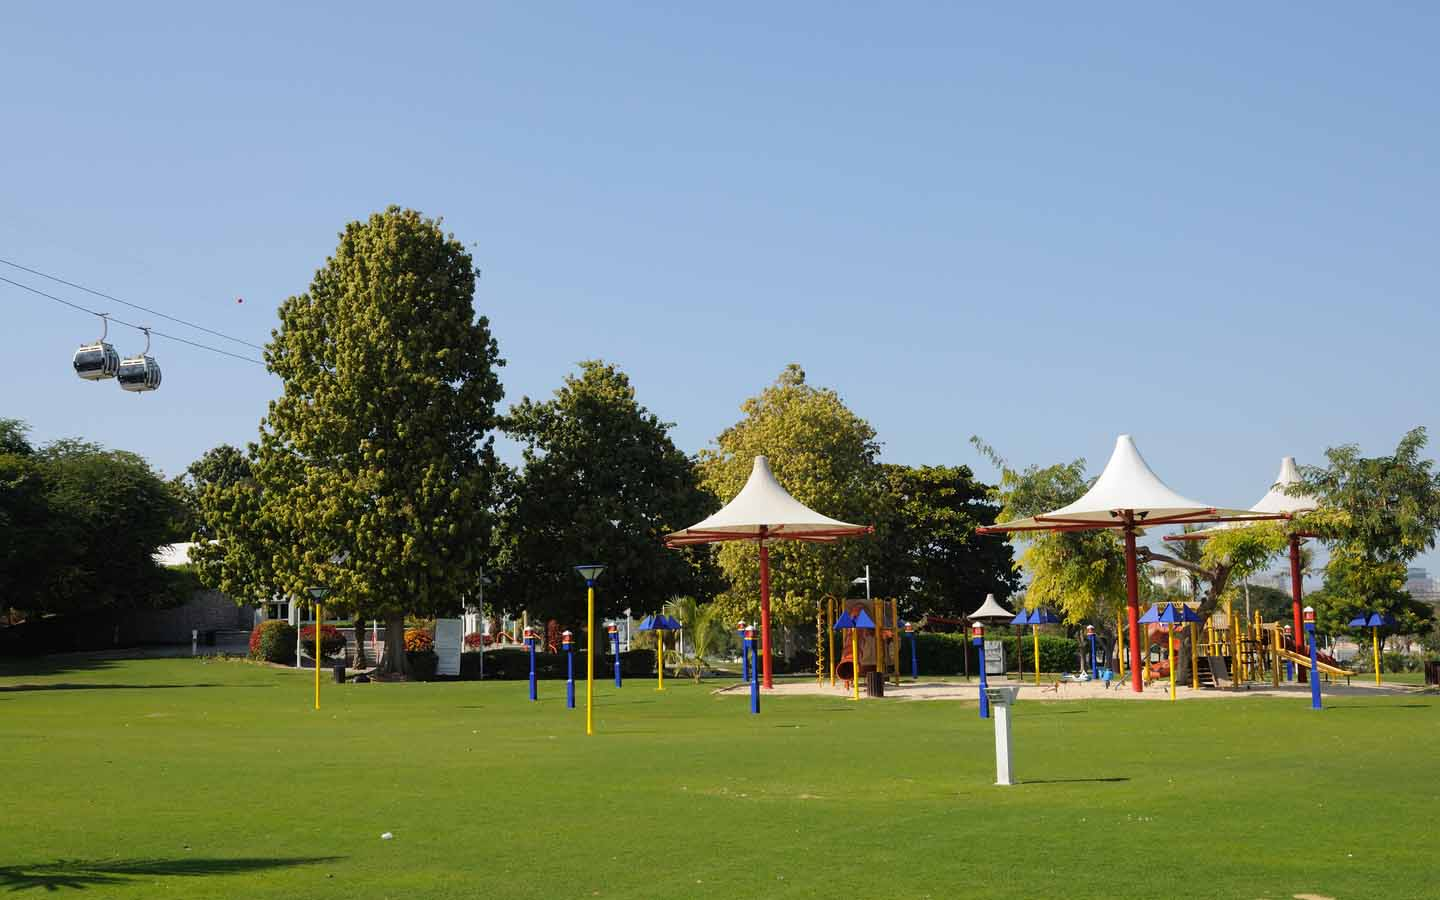 Swings at kids play area in Dubai Creek Park